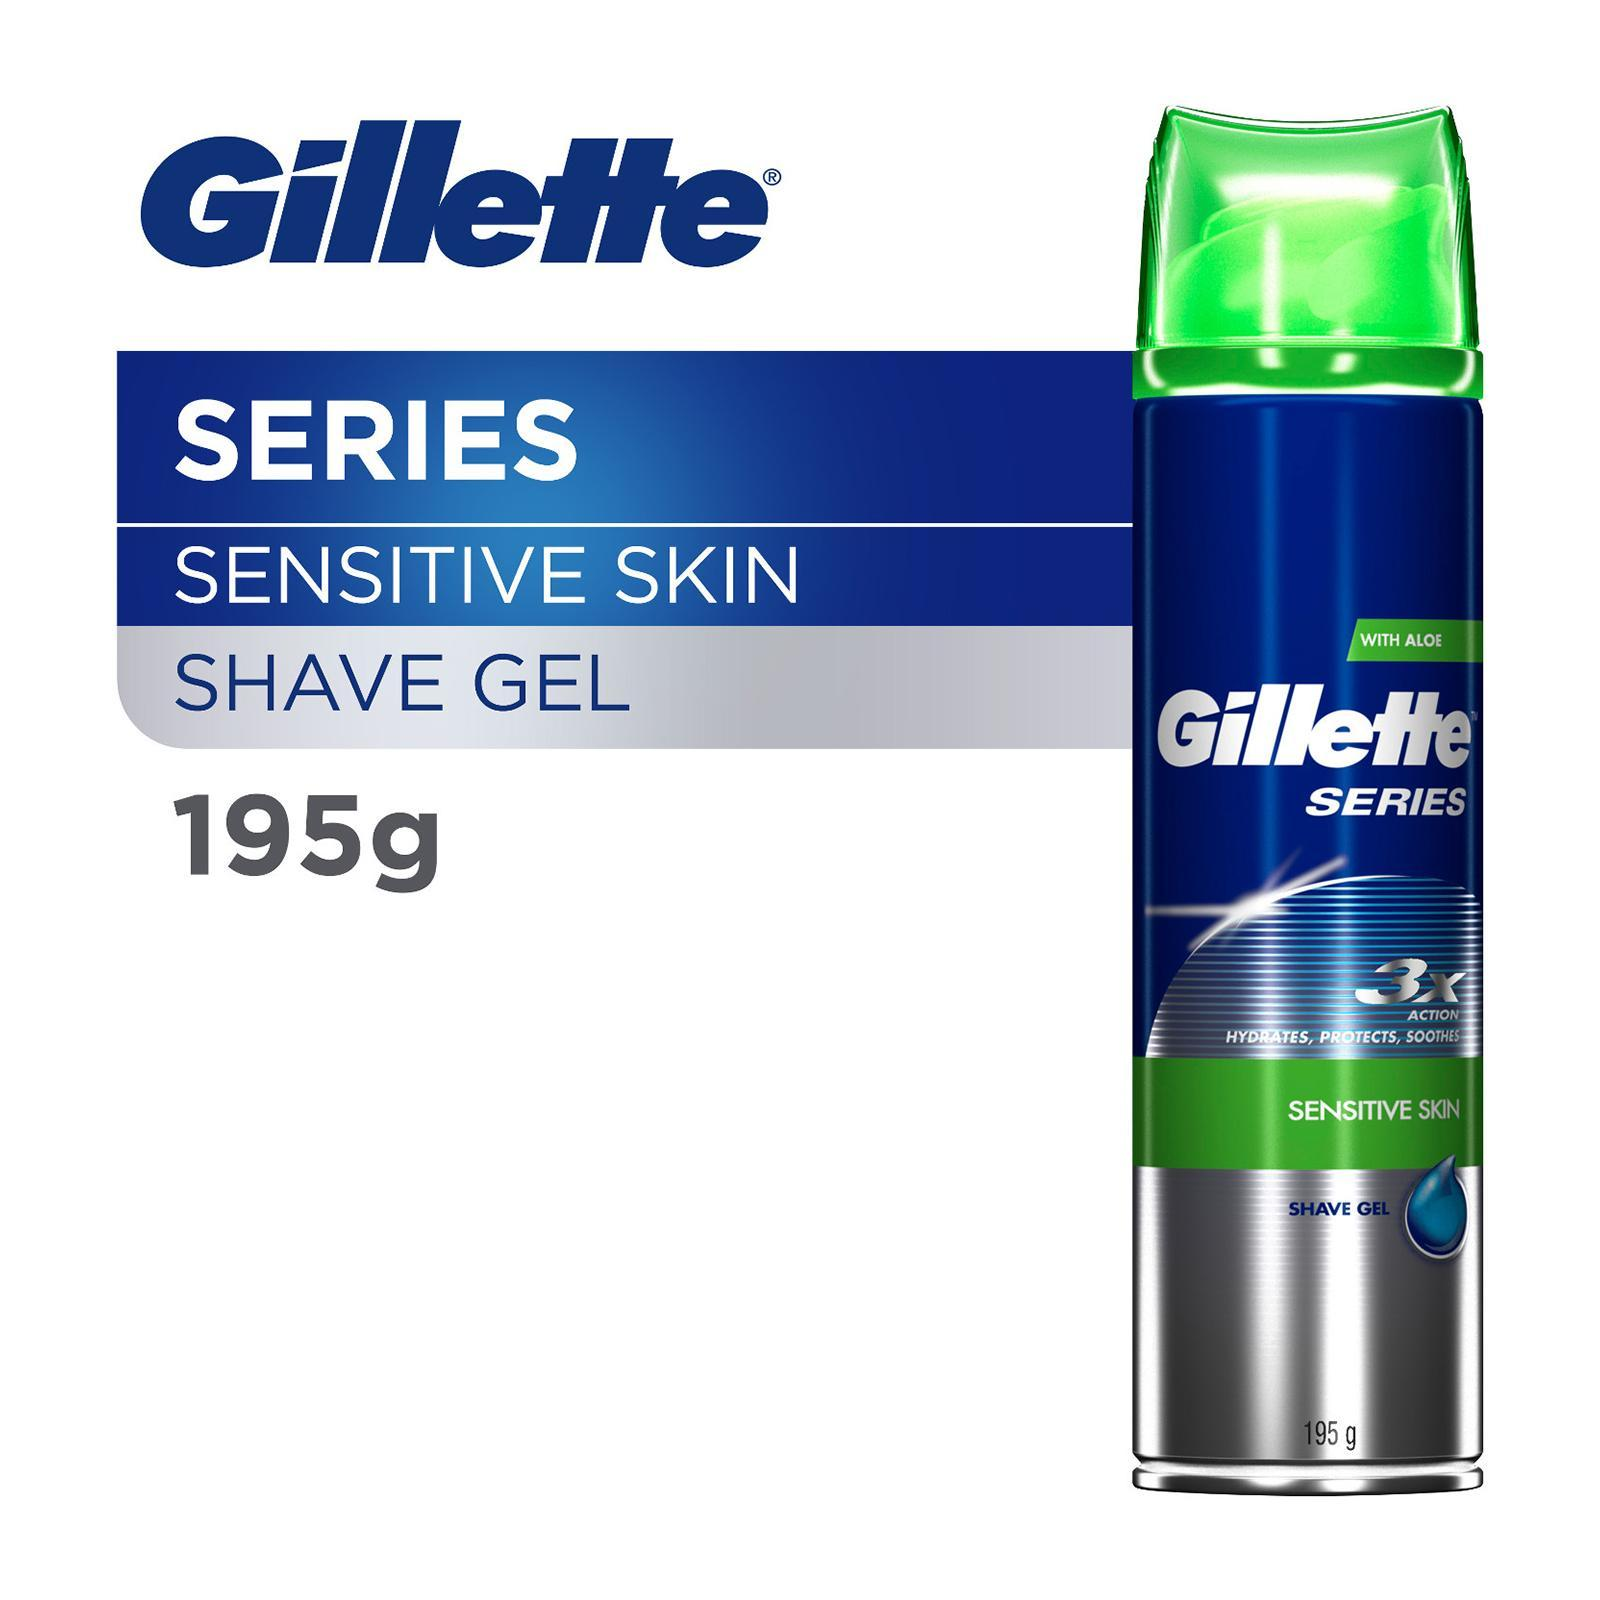 Gillette Series Sensitive Skin Shave Gel